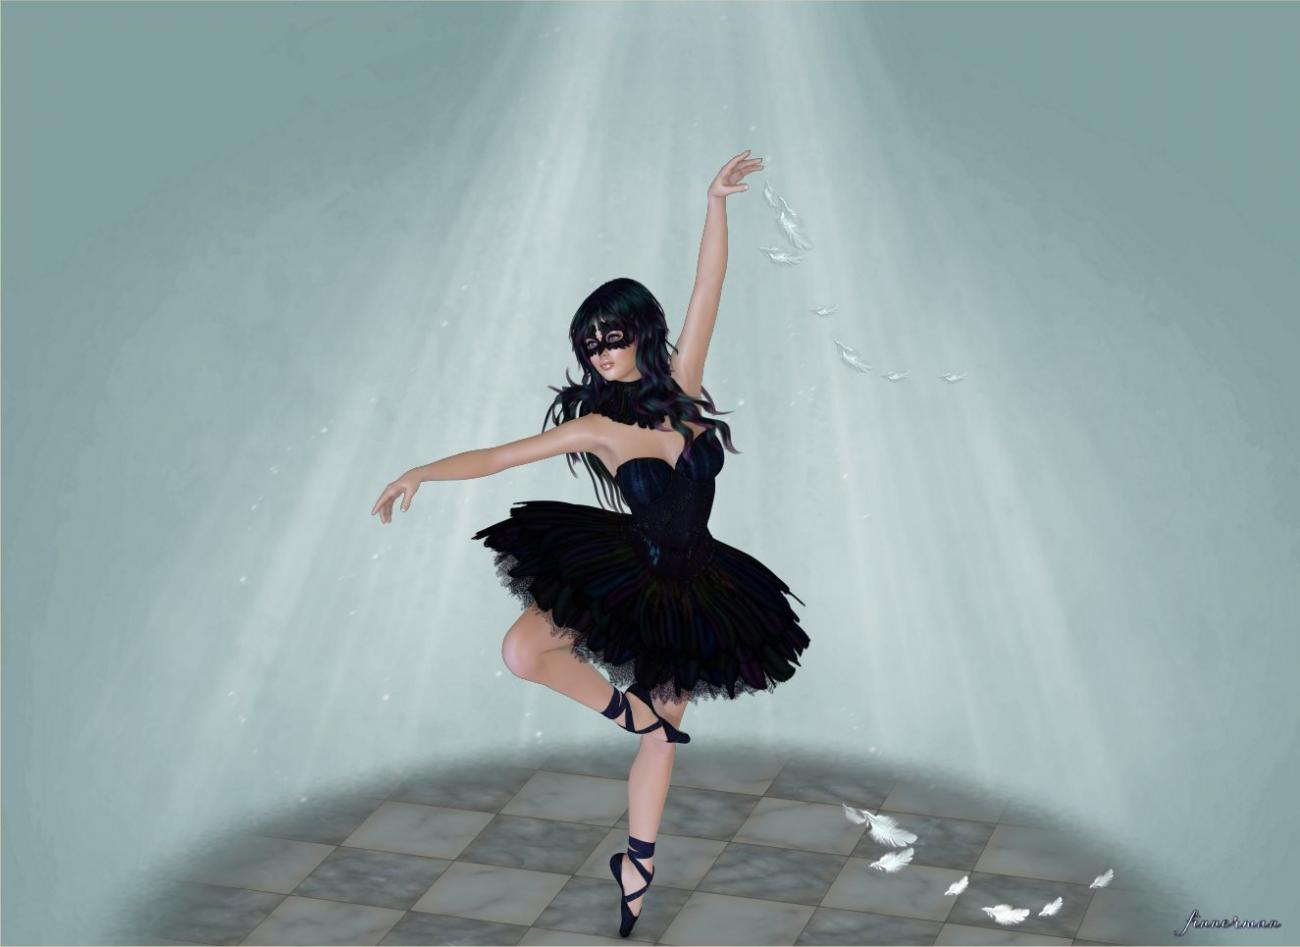 The masked ballerina